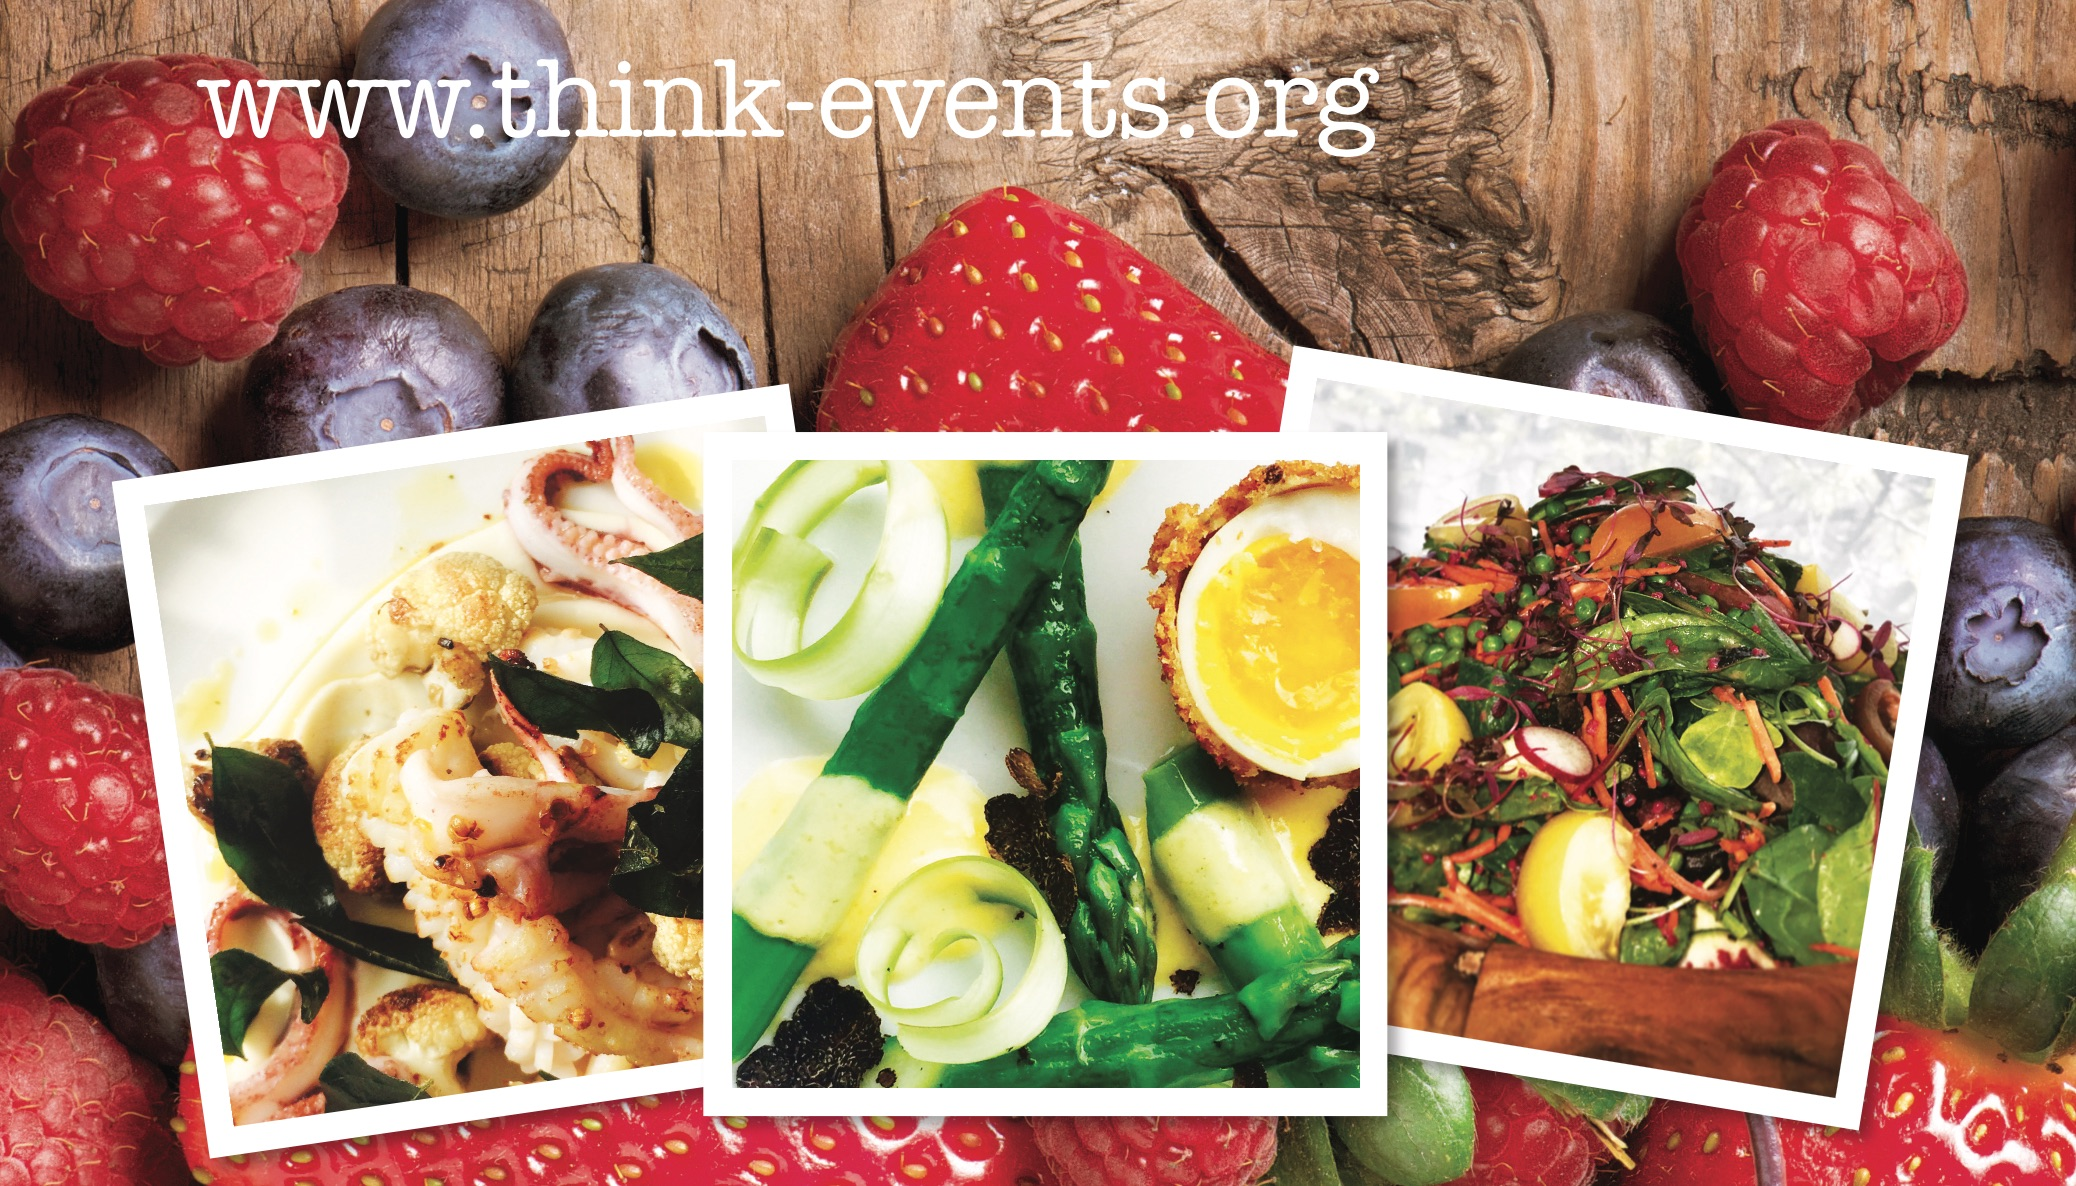 Think Events and Cafe Think